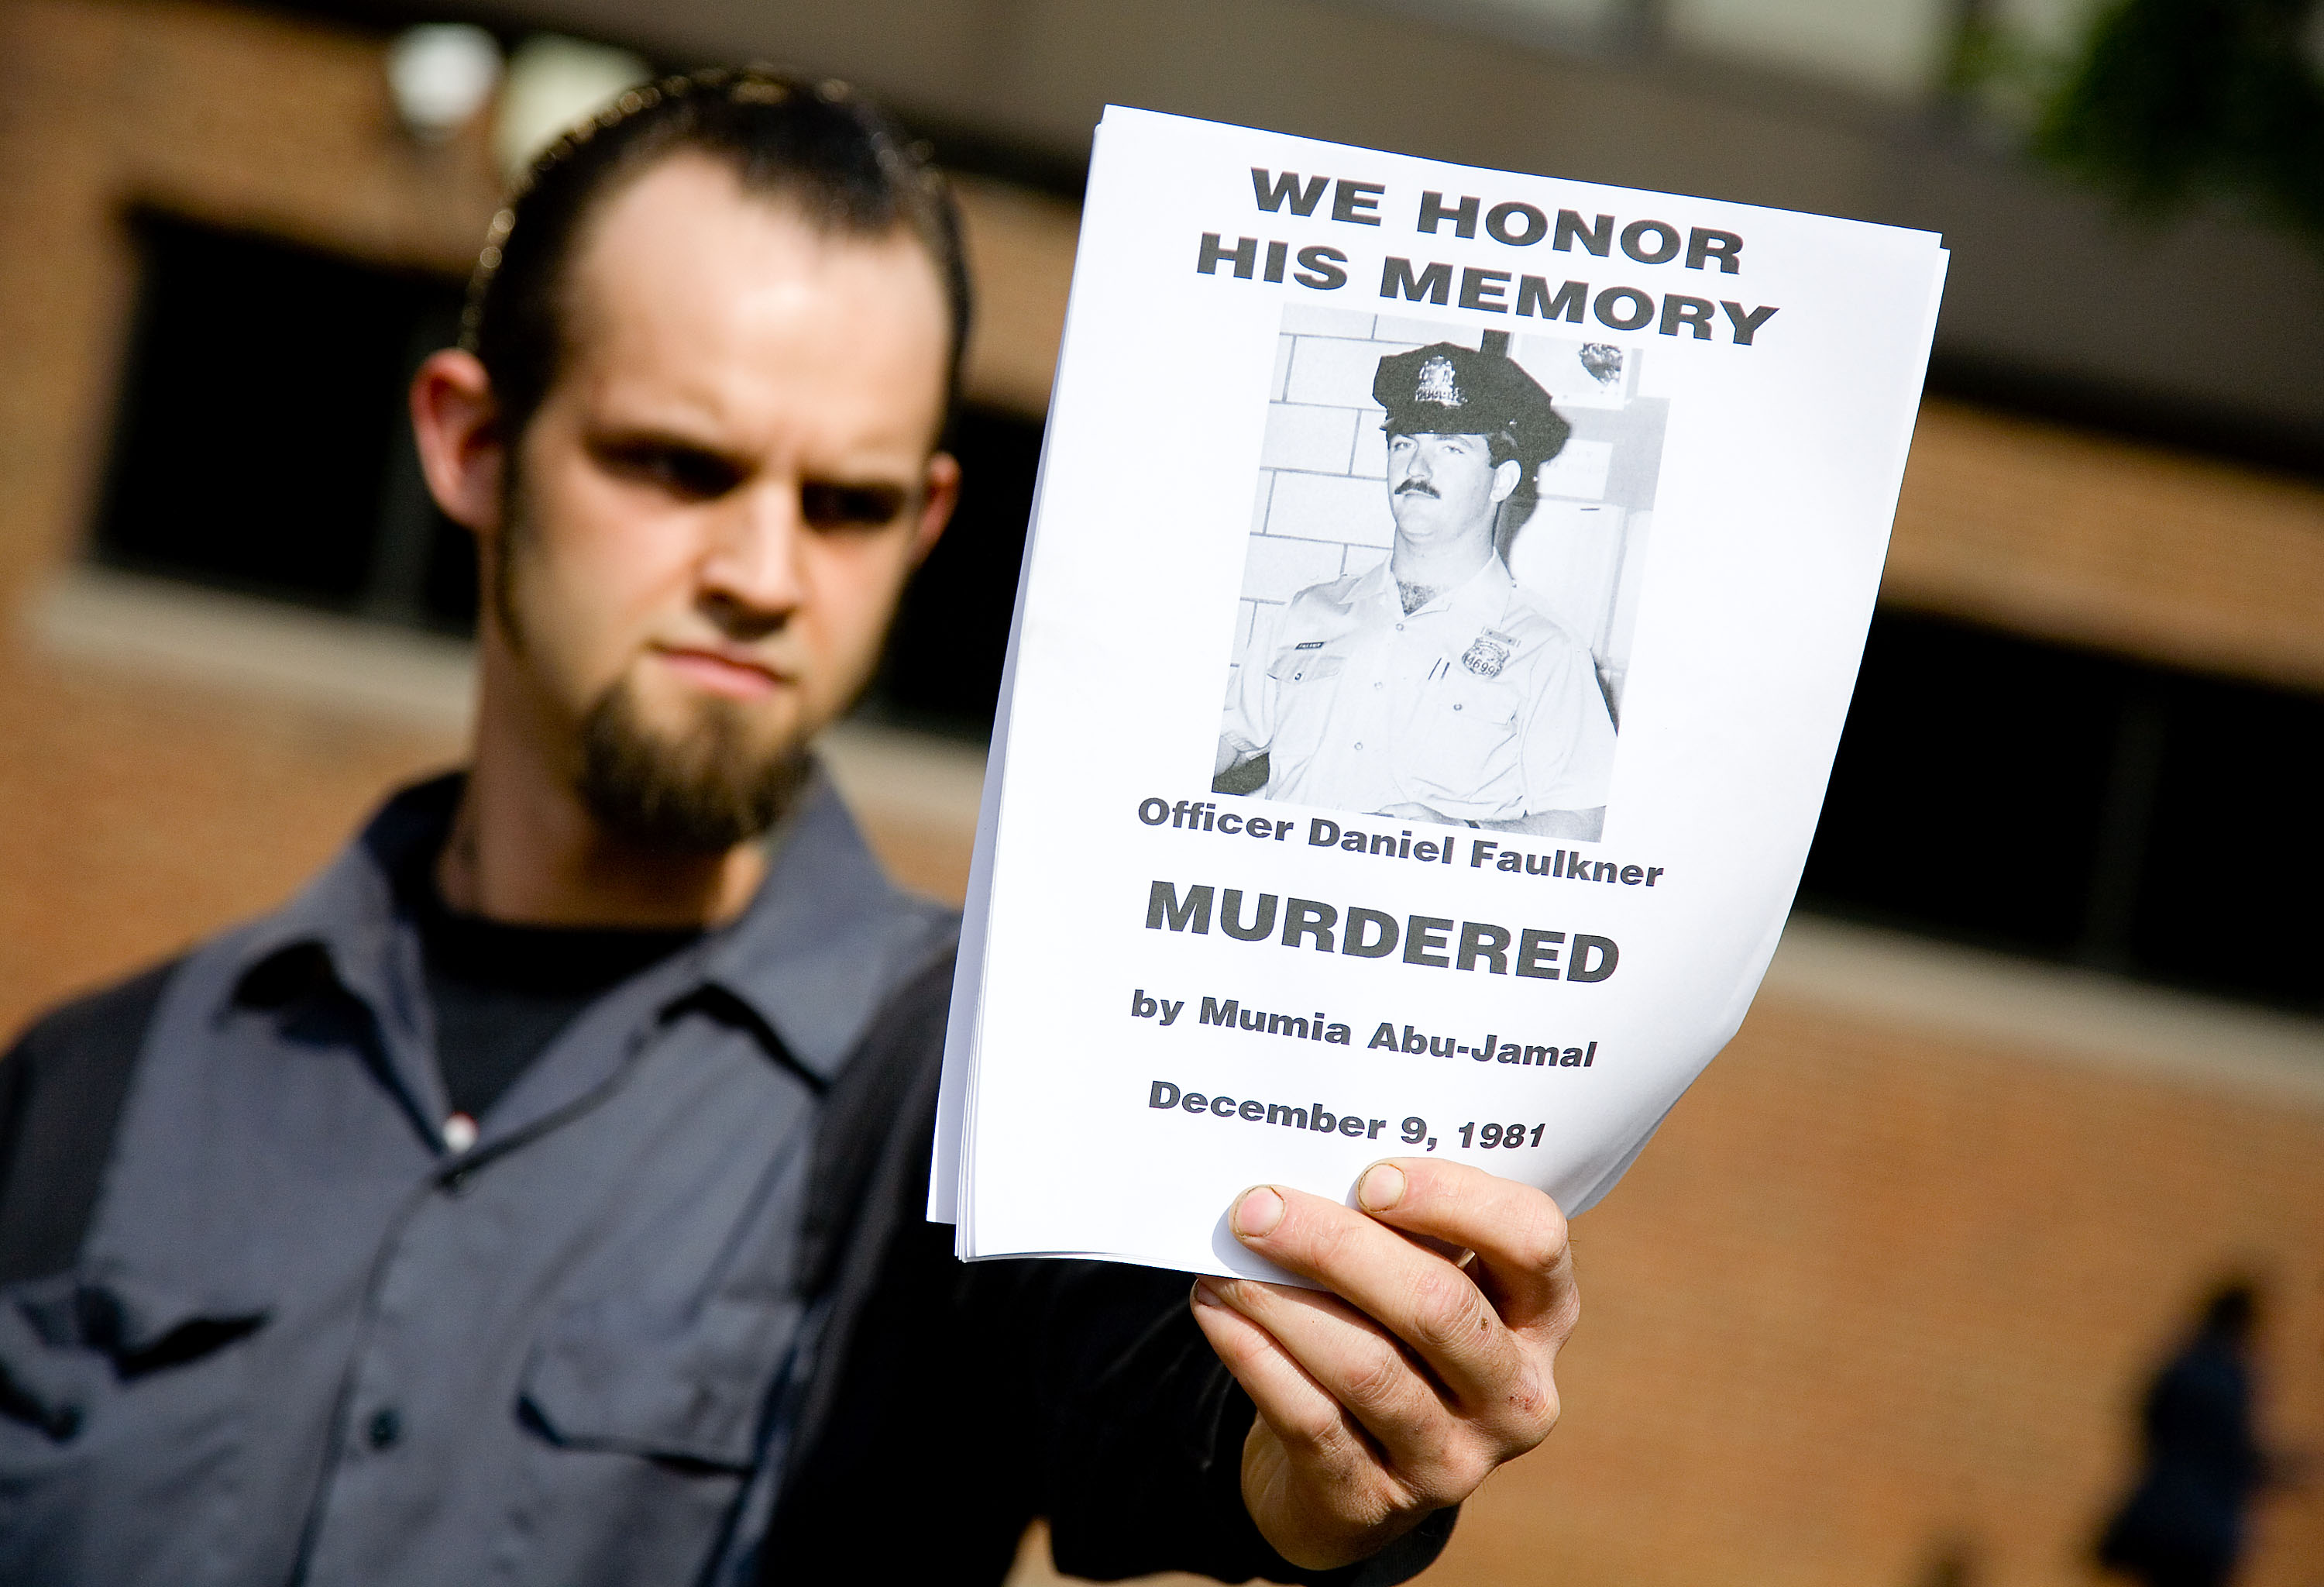 A counter protester holds a handbill in remembrance of slain police officer Daniel Faulkner at a rally for Faulker's convicted murderer,  death-row inmate Mumia Abu-Jamal outside the Federal Court building May 17, 2007 in Philadelphia, Pennsylvania.  (Getty)